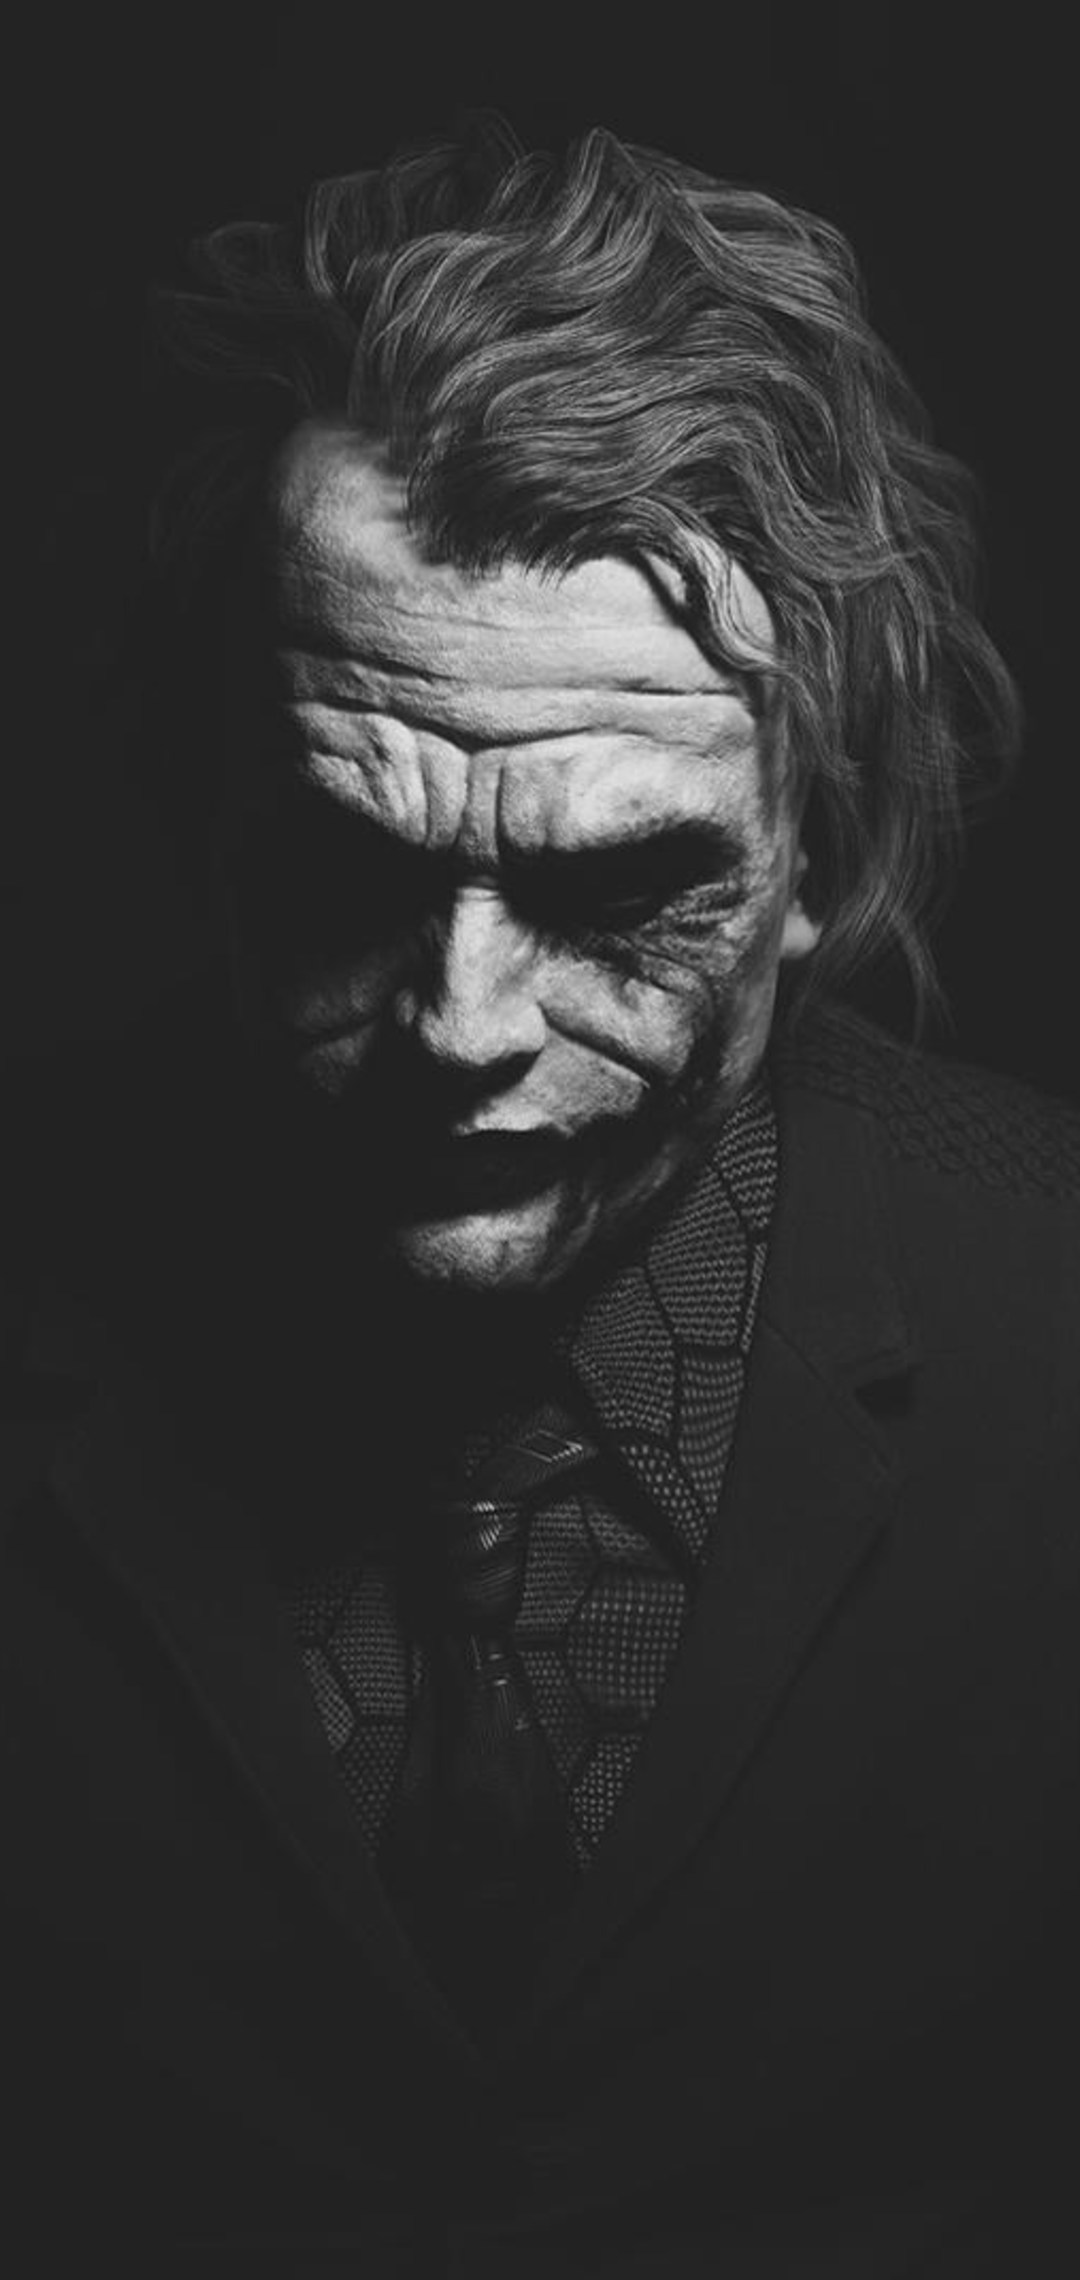 The Joker Wallpaper Full Hd Should I Be Sorry For The Monster 2836749 Hd Wallpaper Backgrounds Download